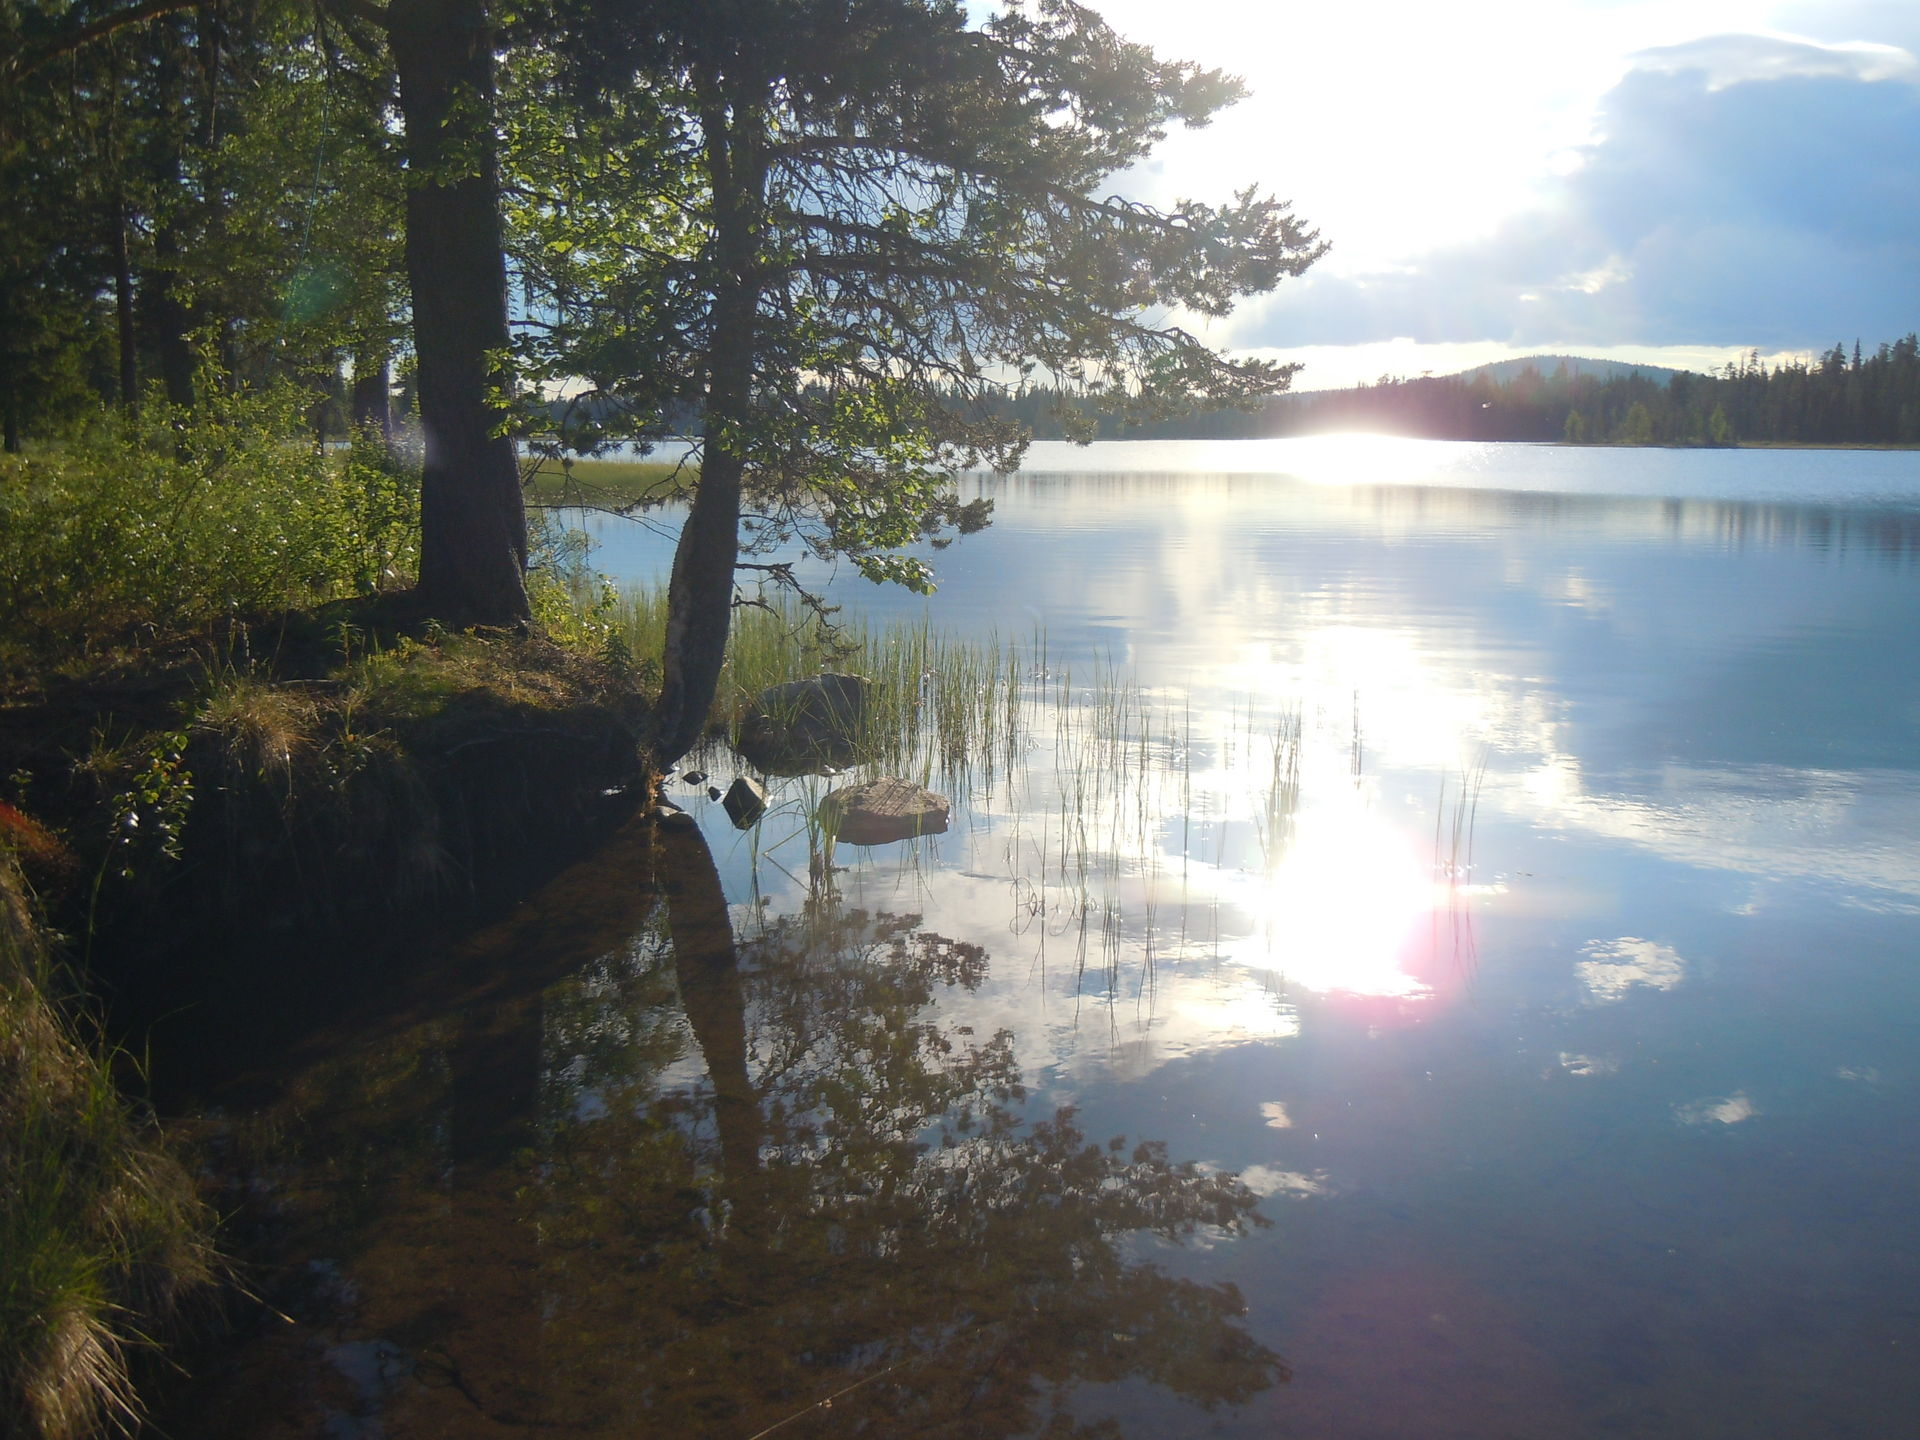 Southern Reivo Lake in lapland